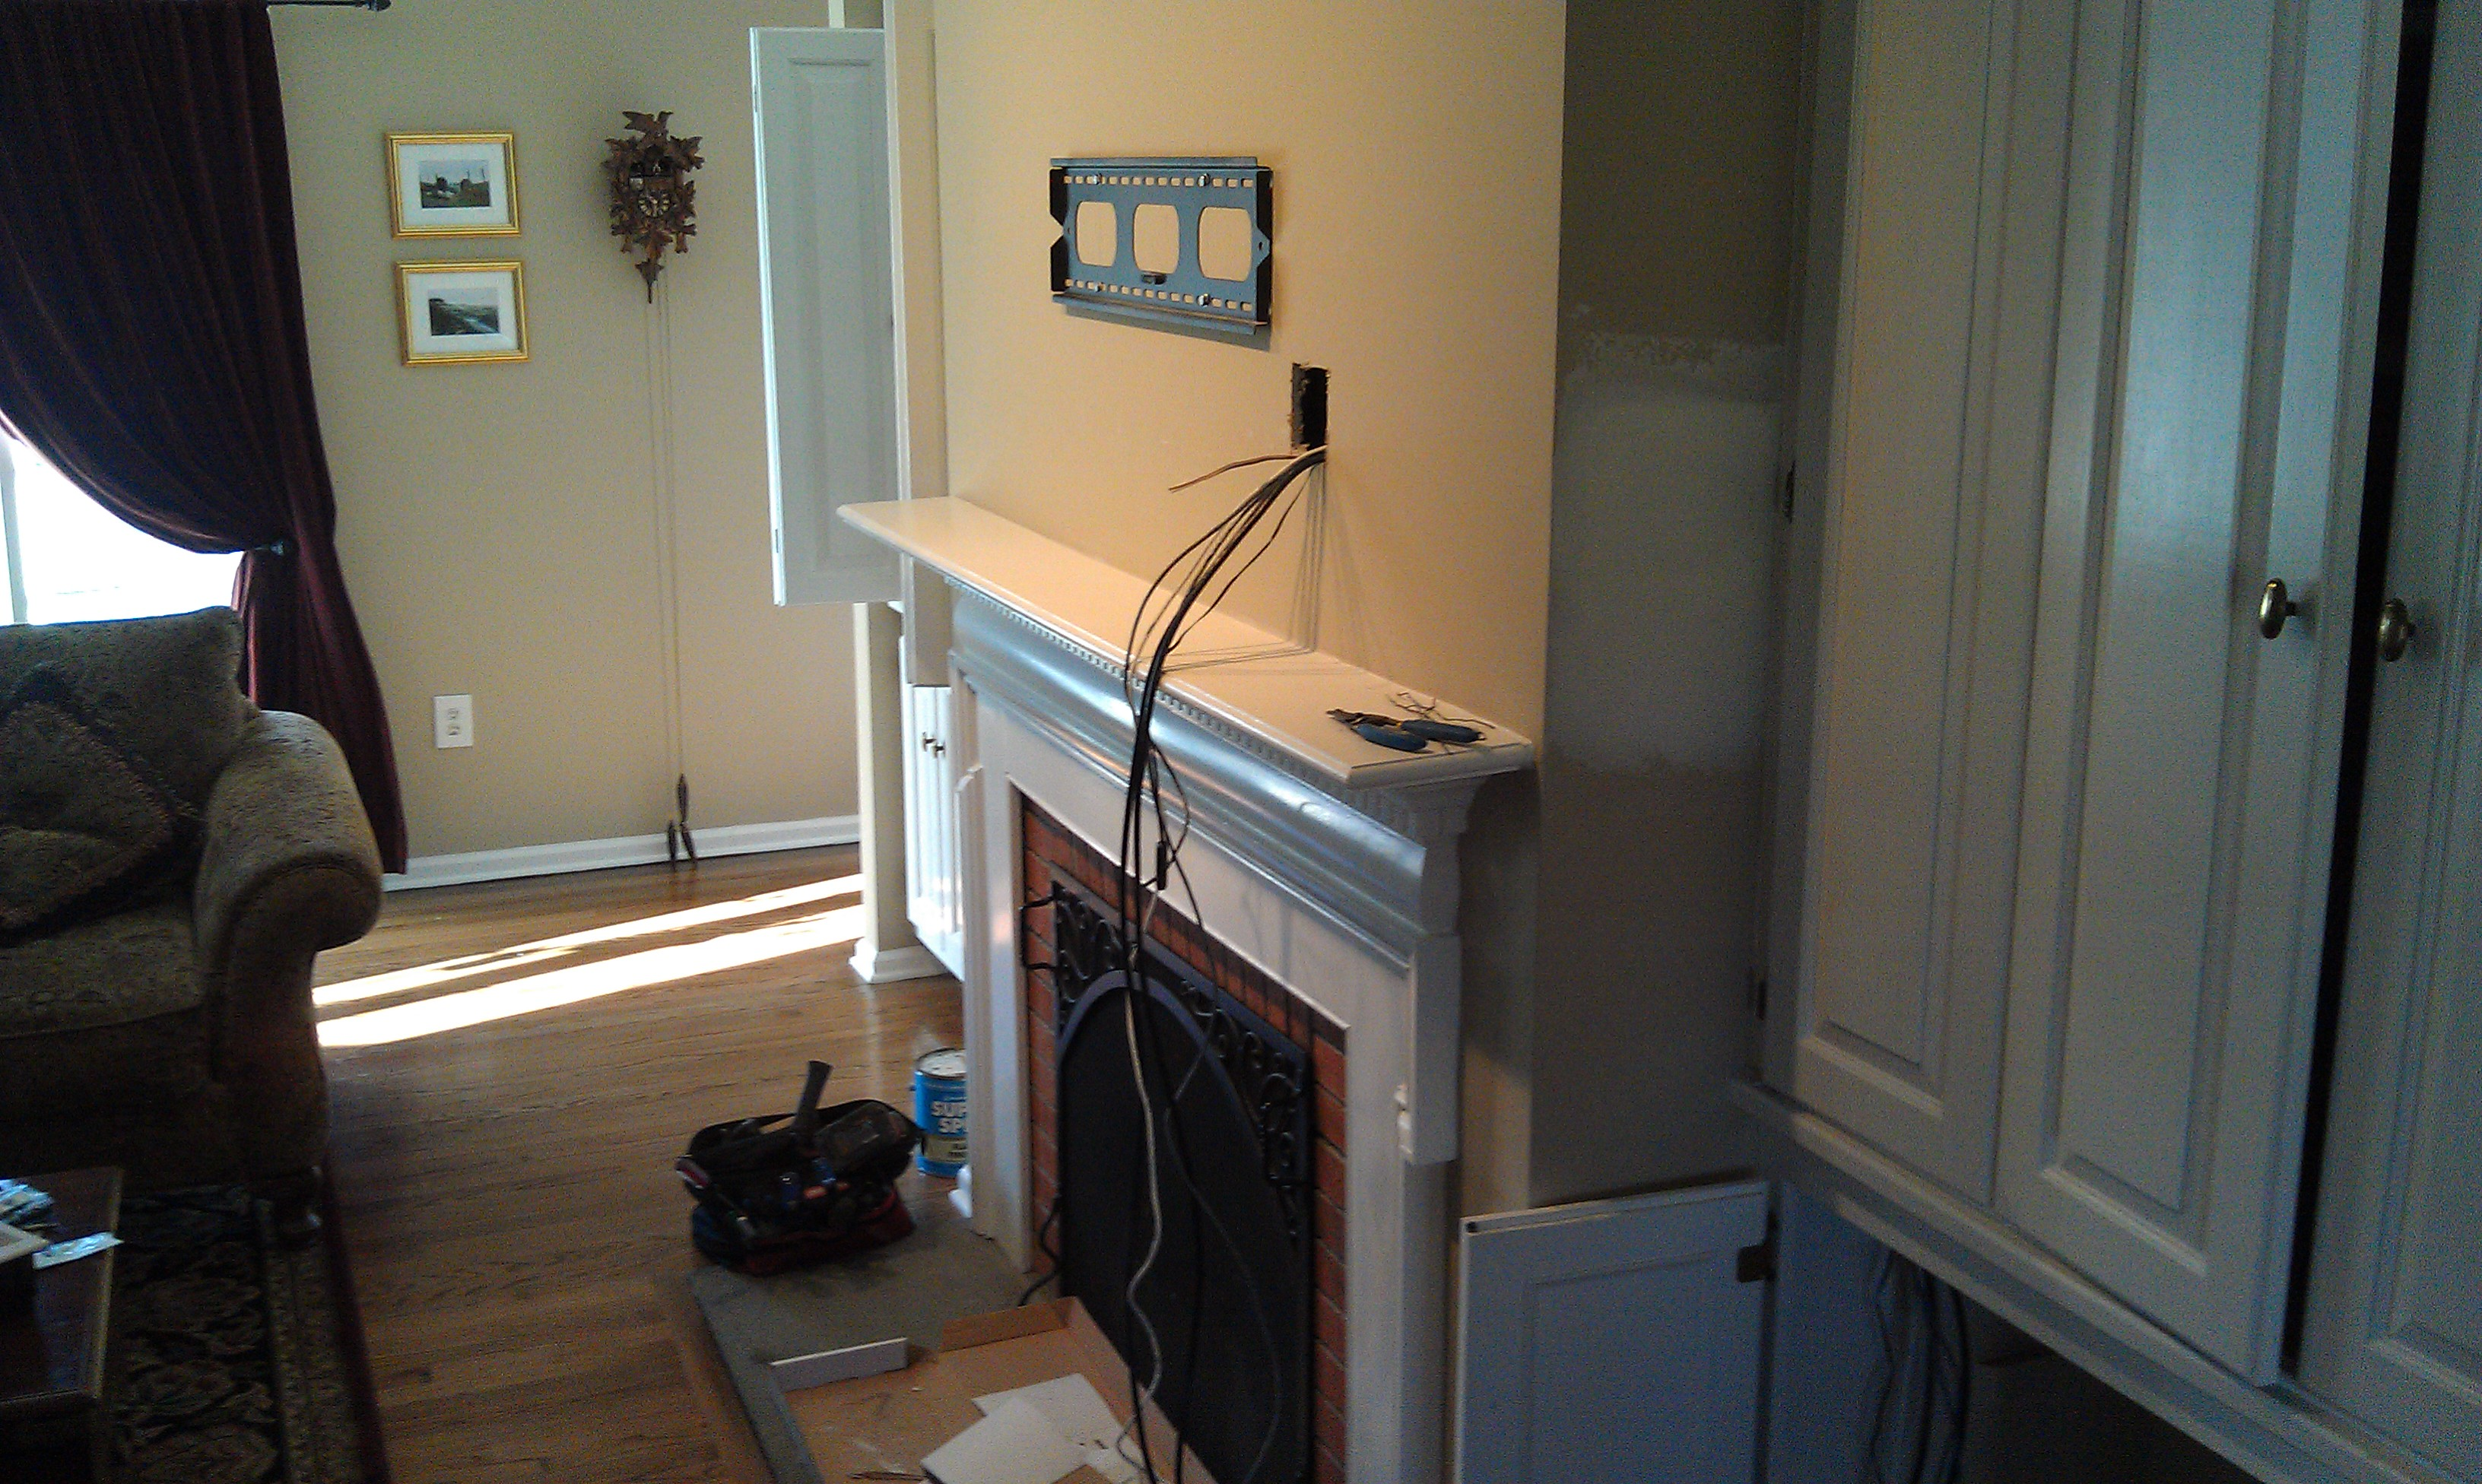 Wallingford CT mount tv on wall | Home Theater Installation